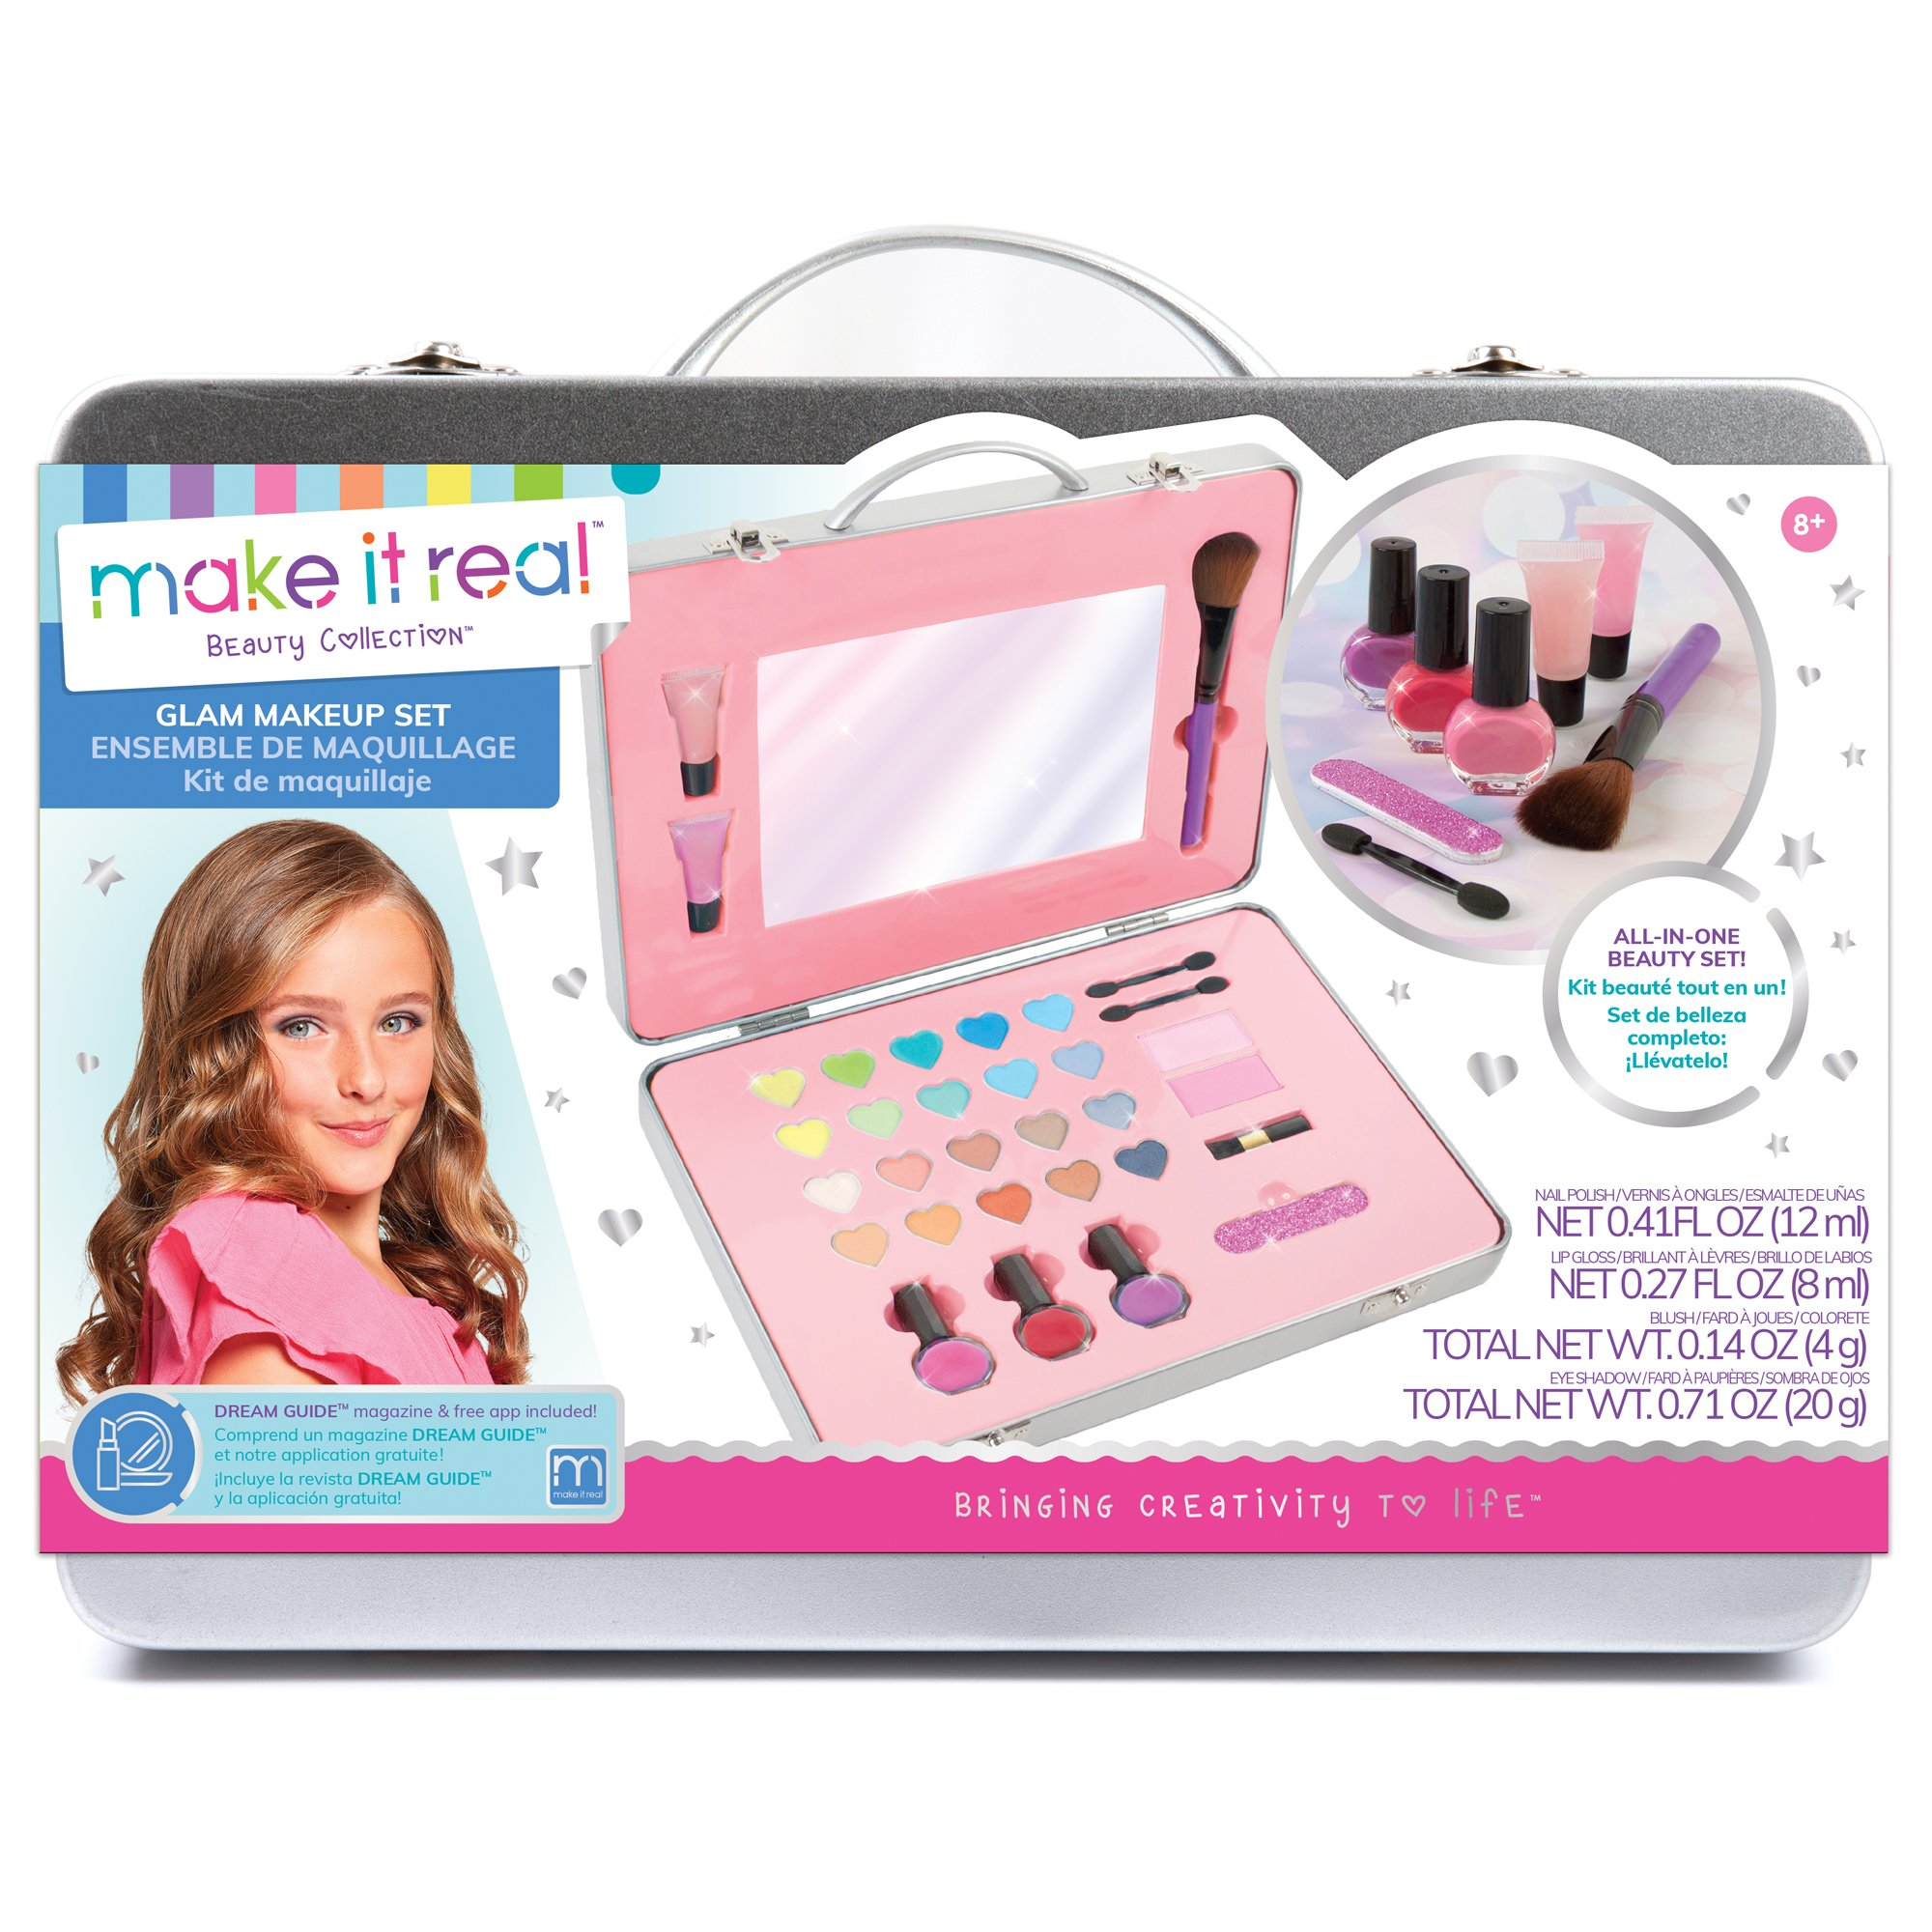 Make It Real - All-in-One Glam Makeup Set. Girls Makeup Kit is a Perfect Starter Cosmetic Set for Kids and Tweens. Includes Case, Mirror, Eye Shadow, Blush, Brushes, Lip Gloss, Nail Polish and More